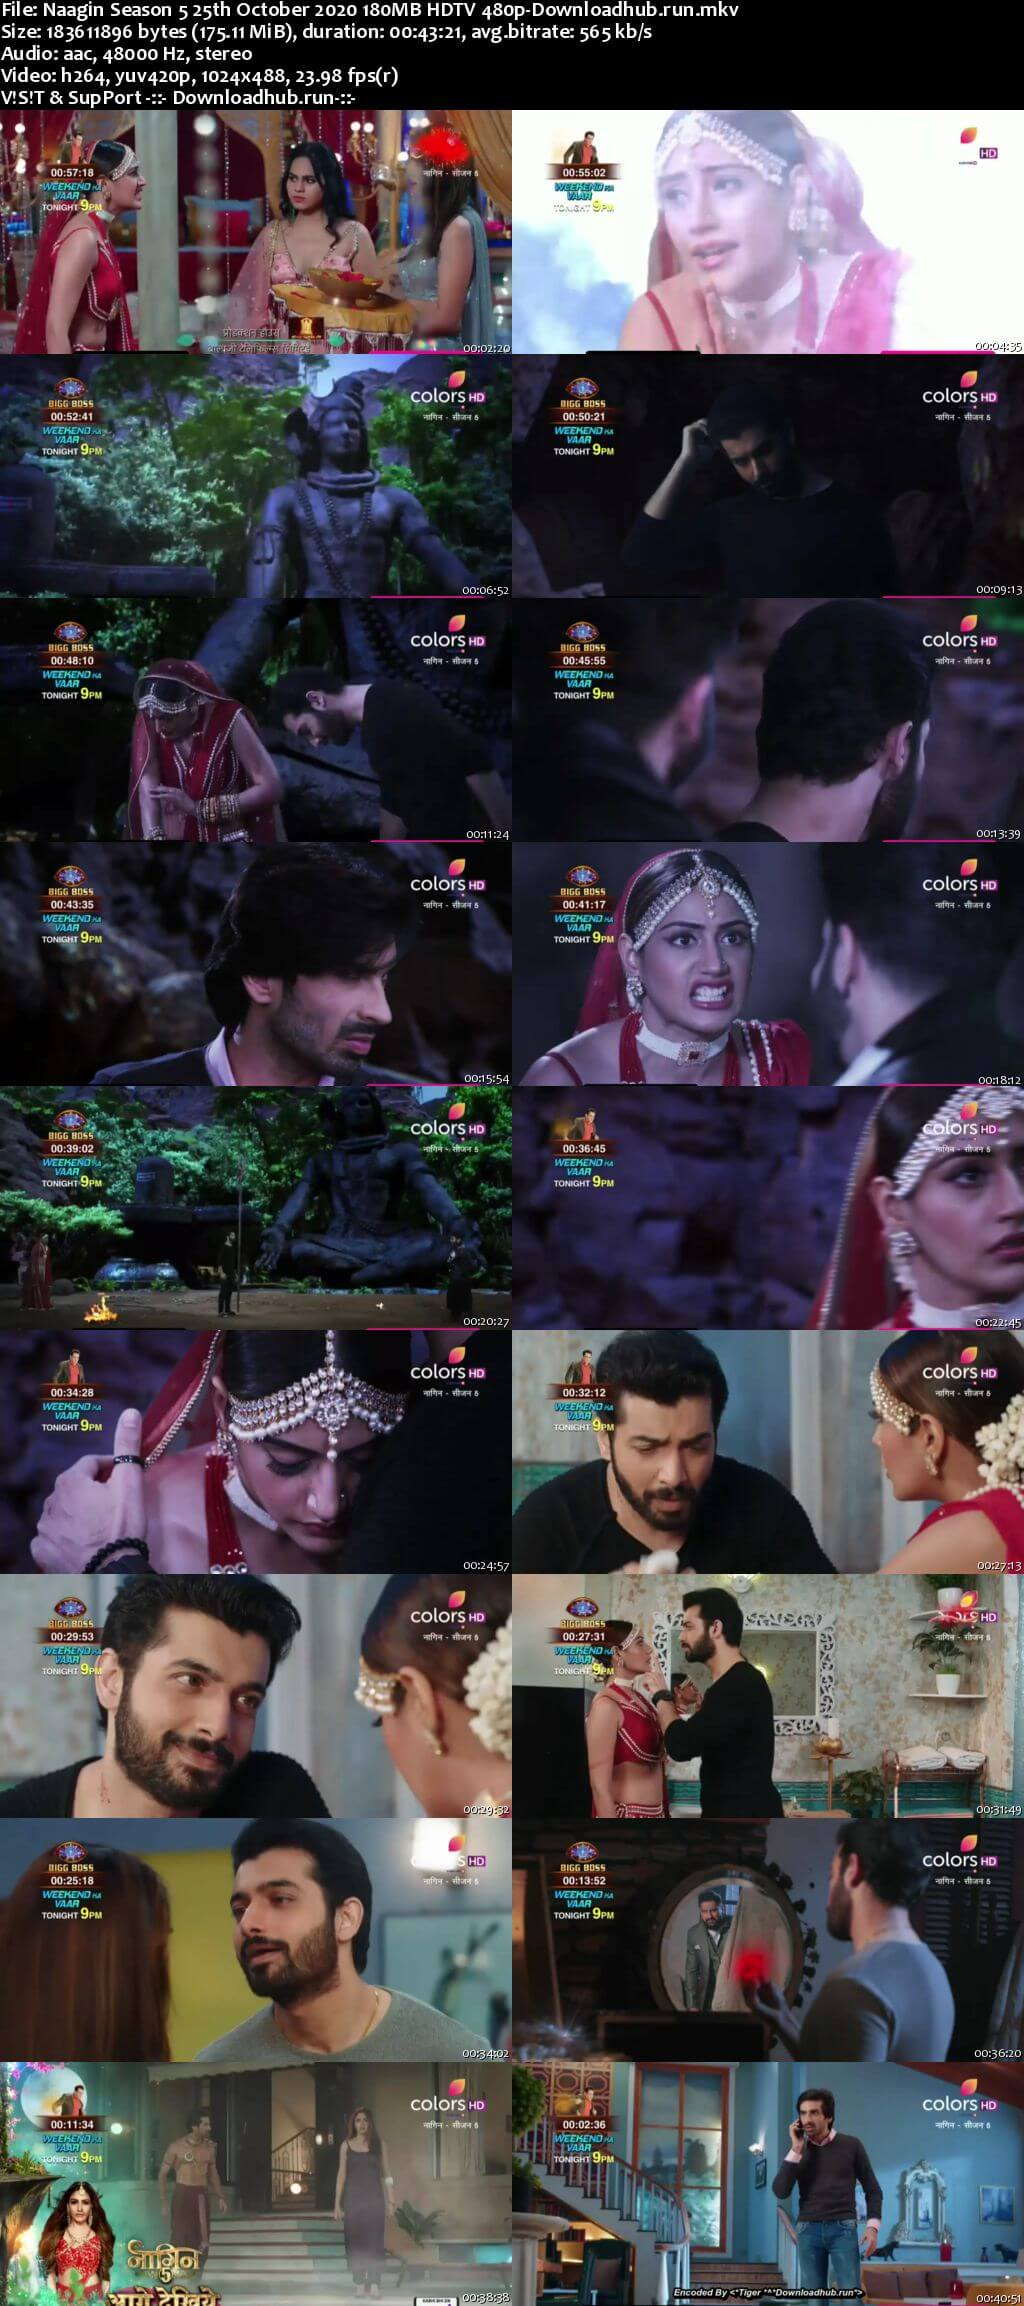 Naagin Season 5 25th October 2020 180MB HDTV 480p